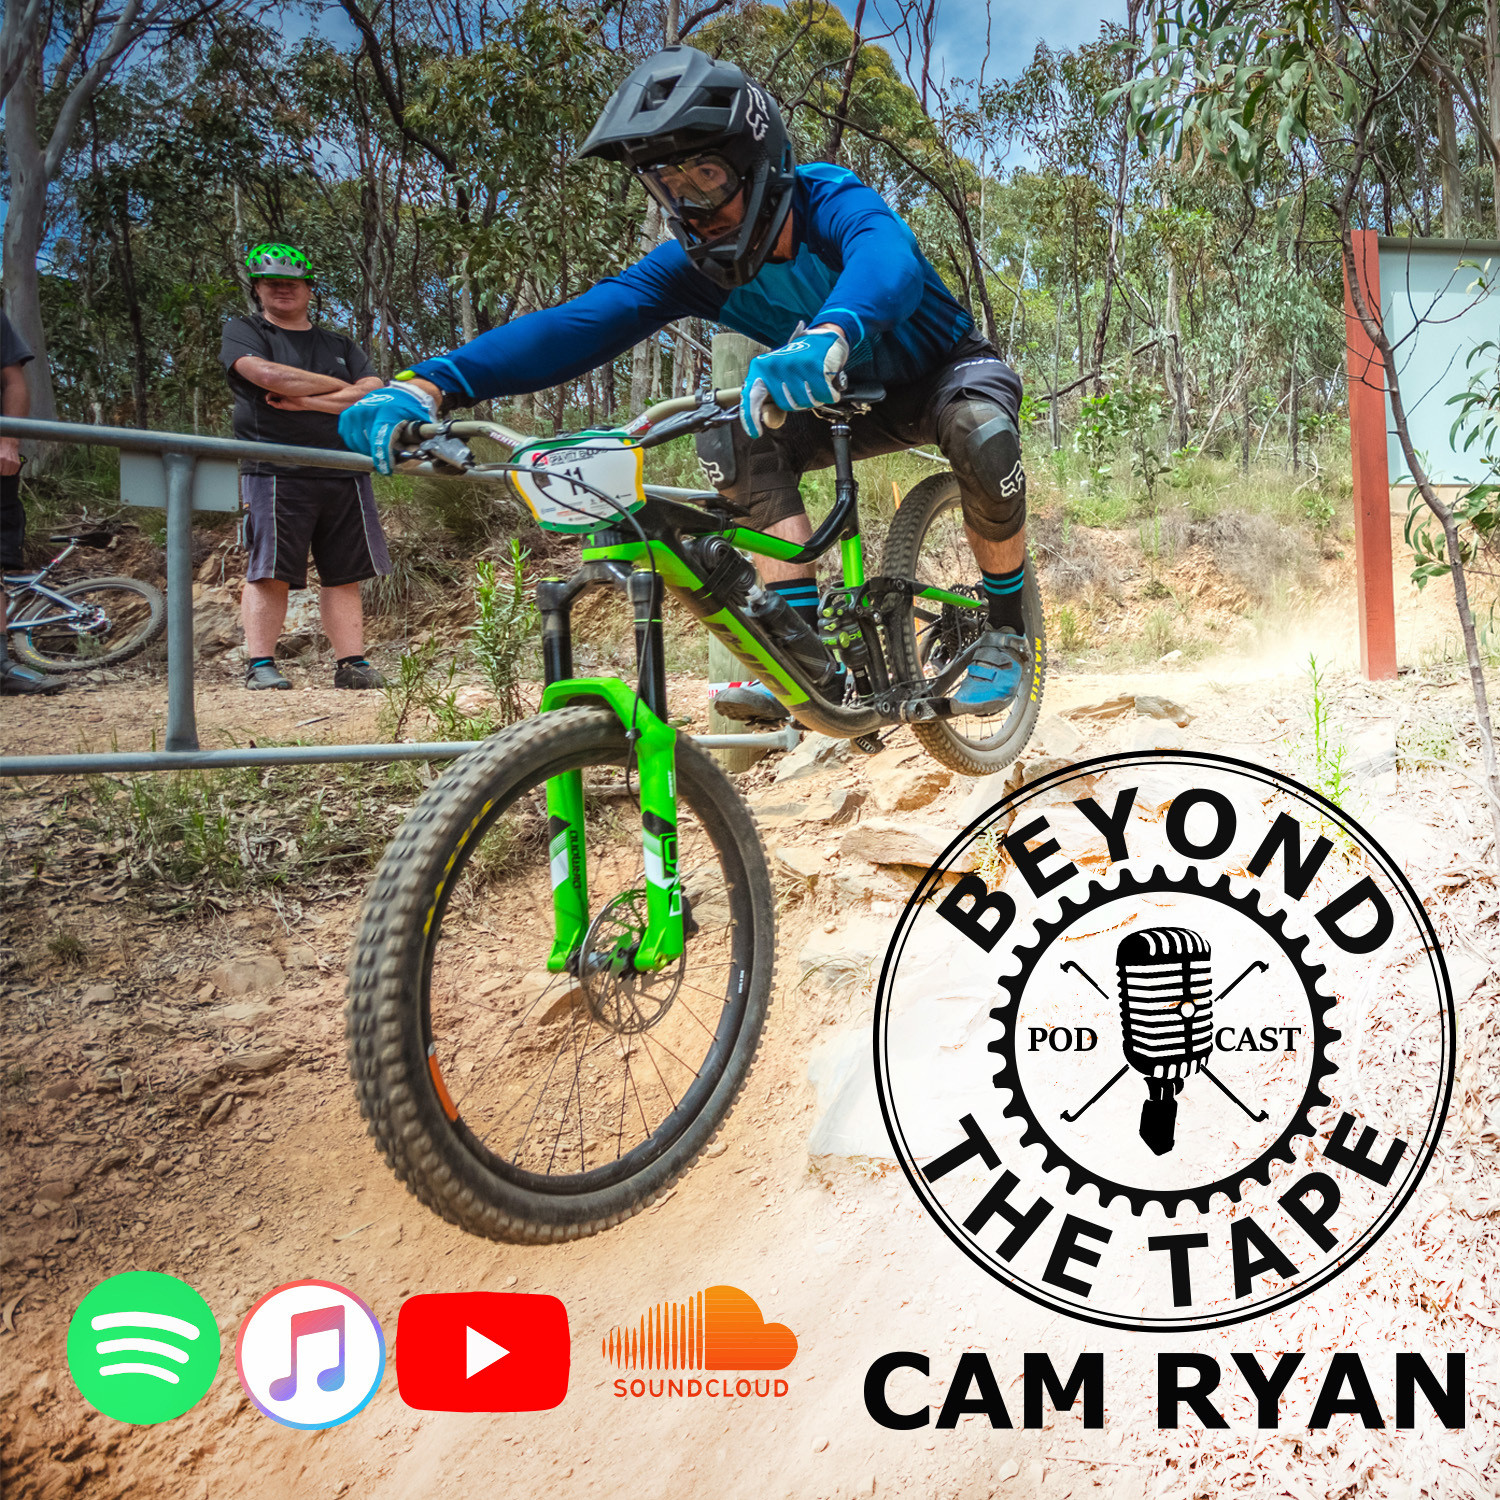 Beyond The Tape Podcast: Episode Two - Cam Ryan